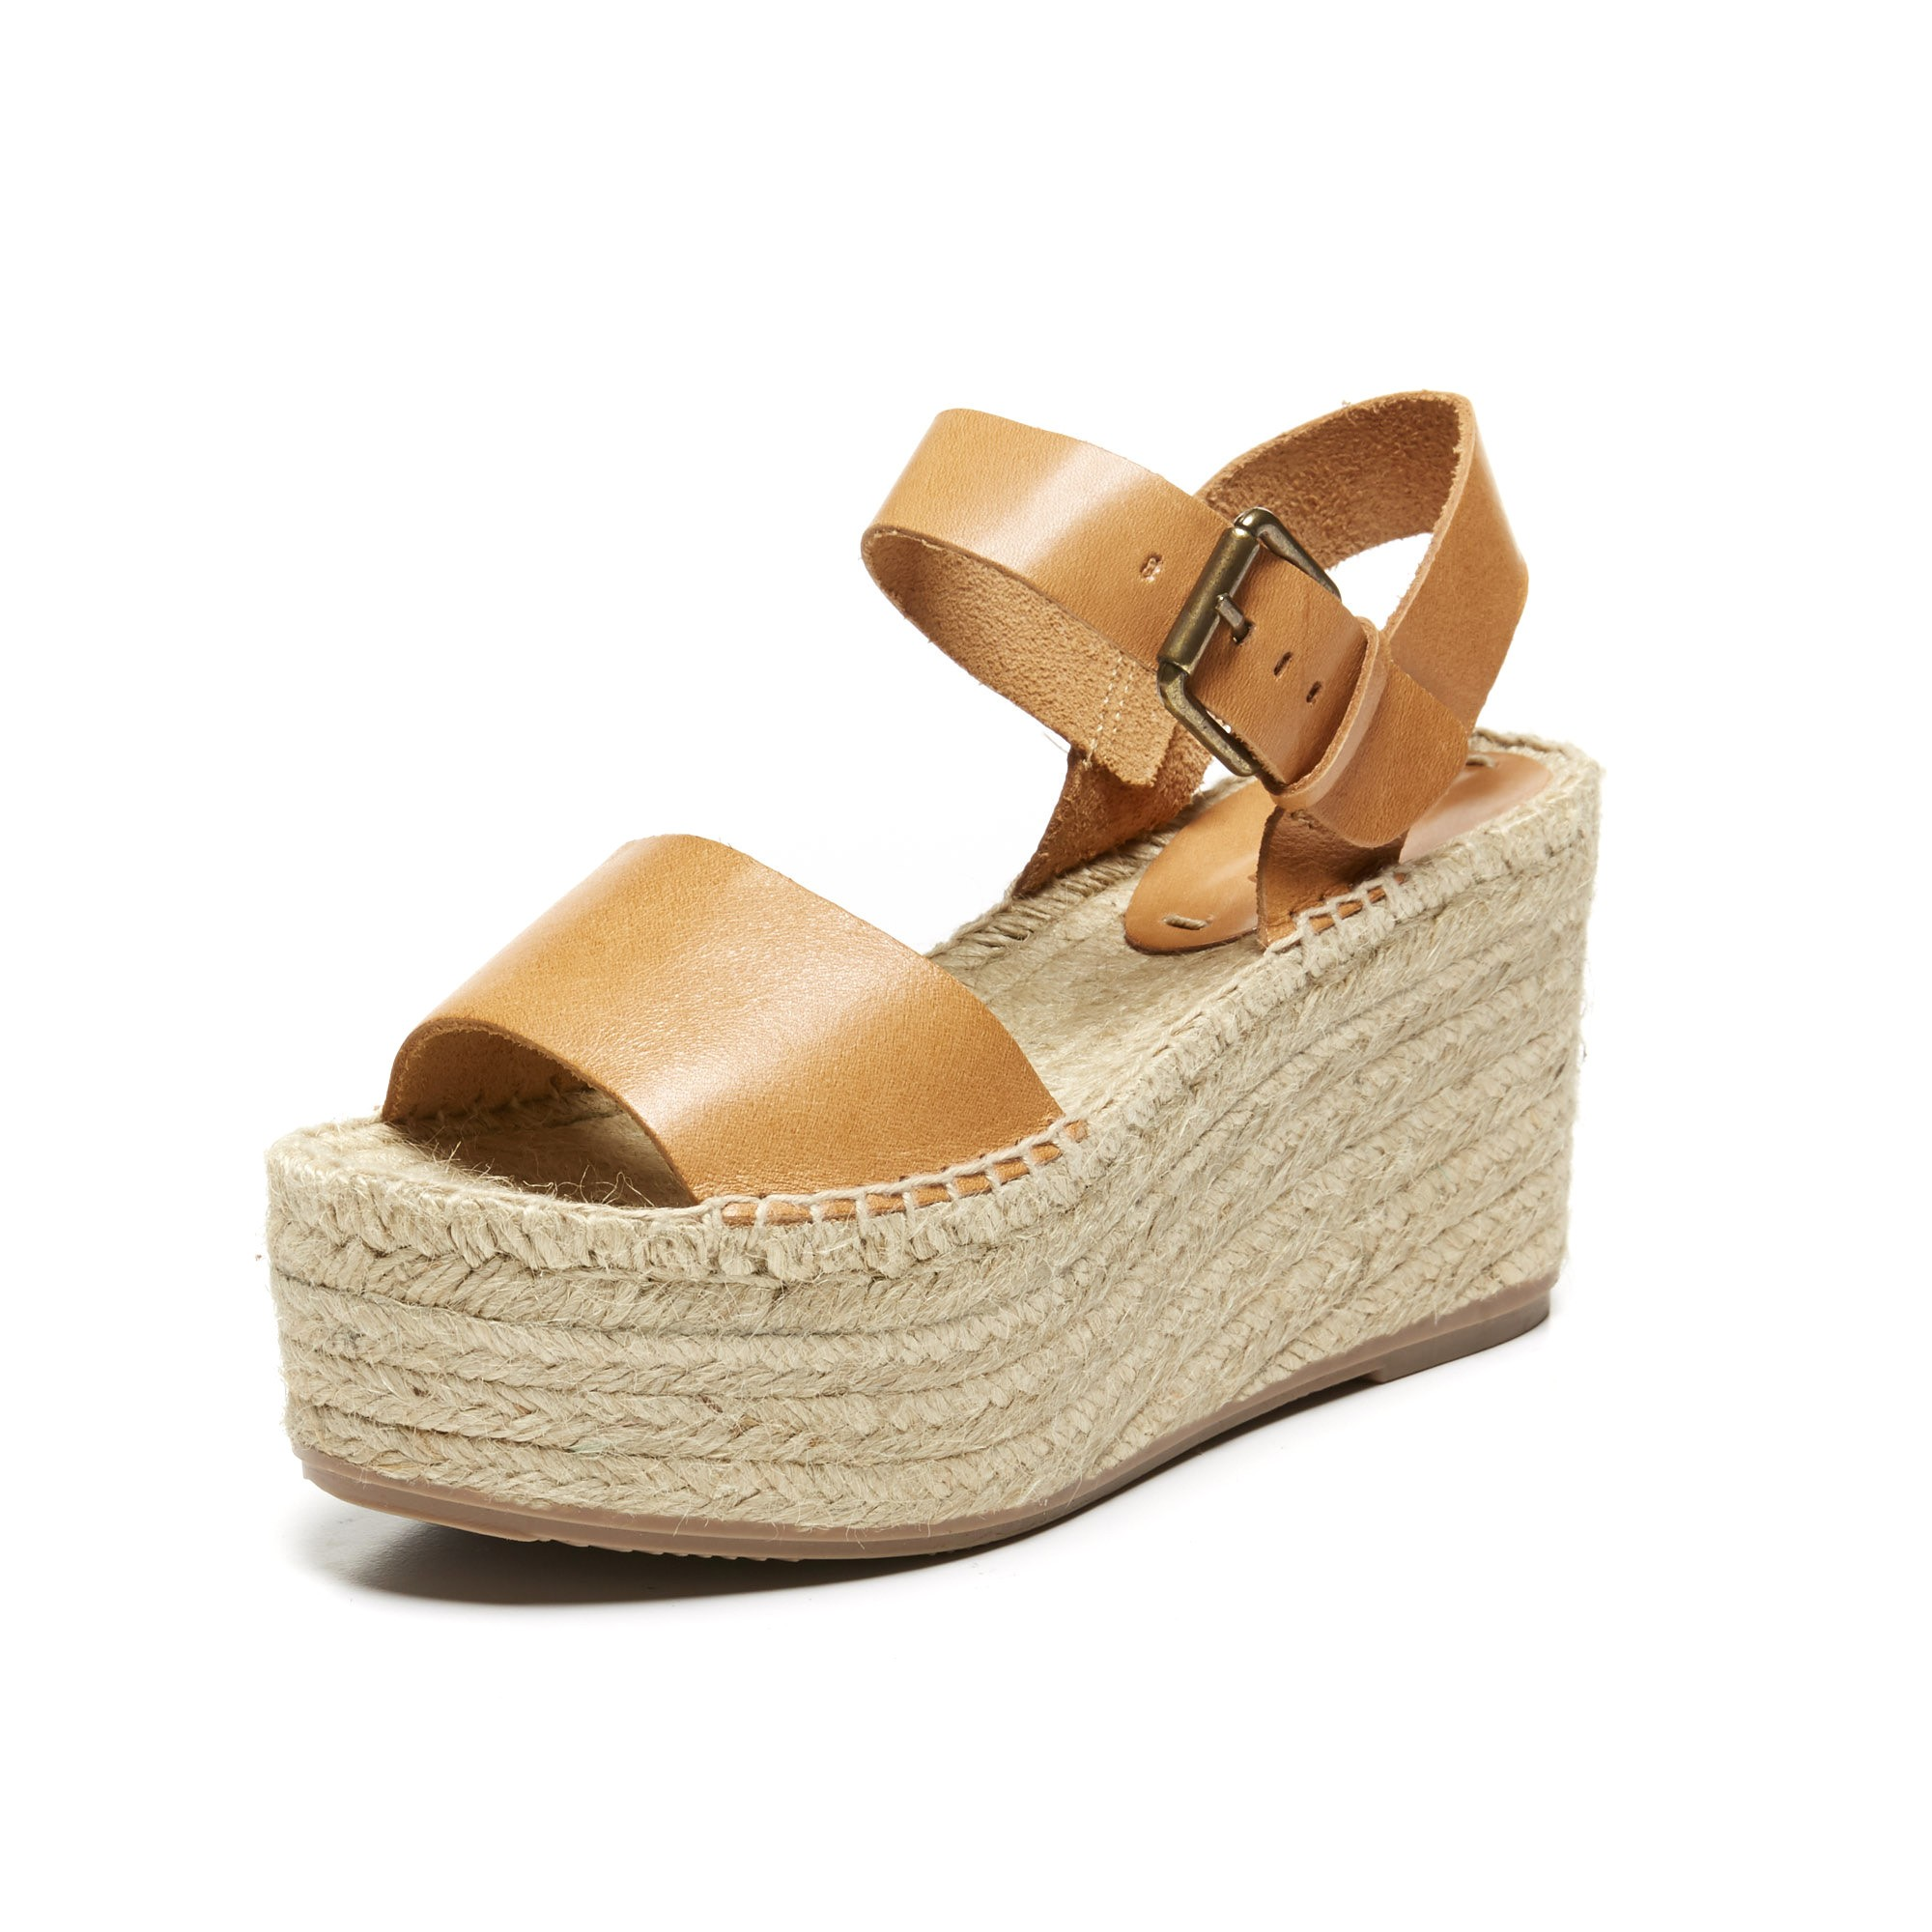 f49a9fc5c33a Soludos Minorca High Platform Sandal in Nude Leather - Soludos ...